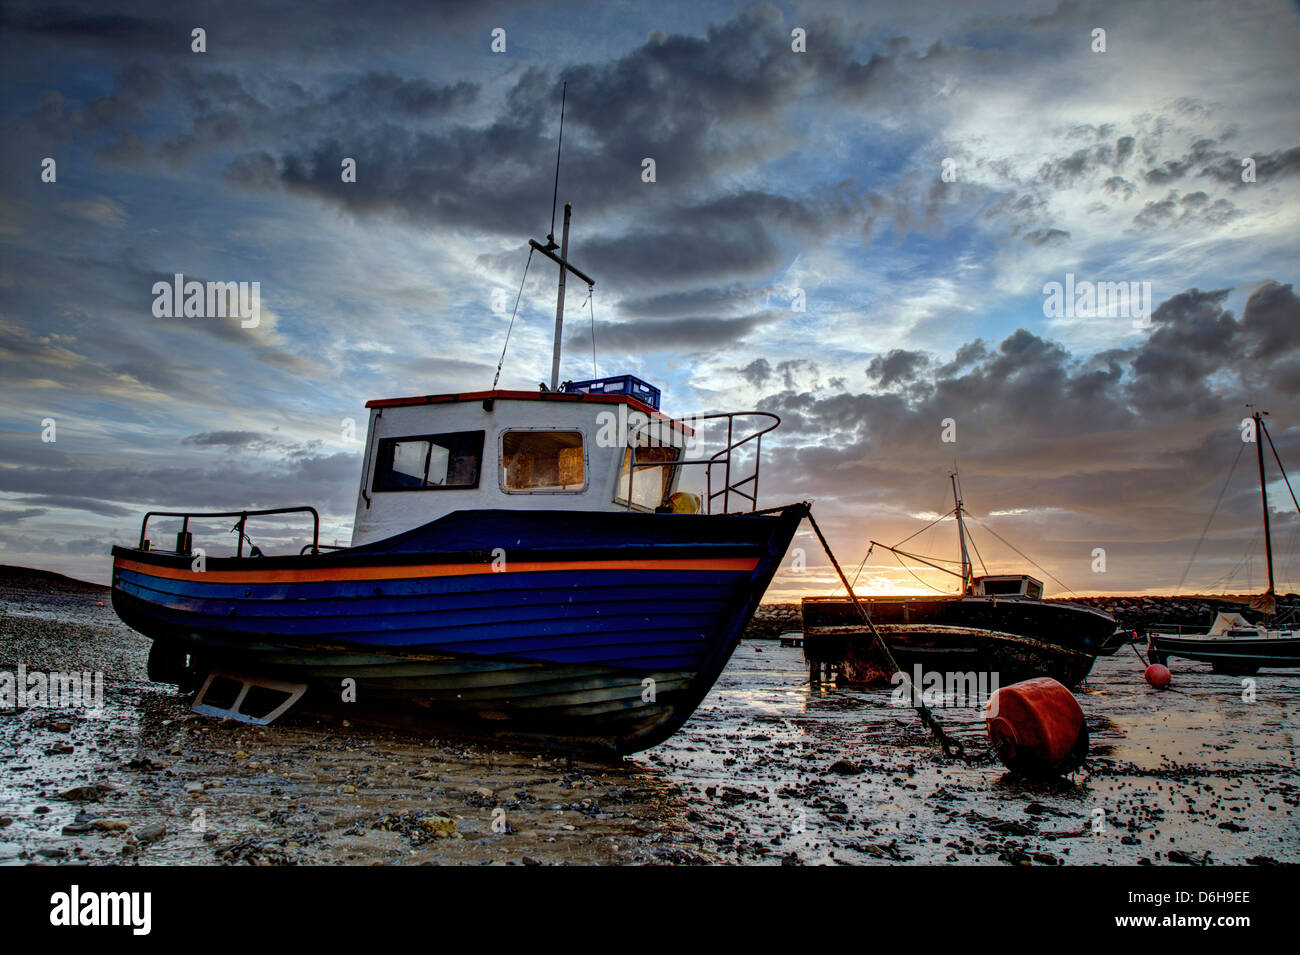 Boats at low tide in the harbor - Stock Image